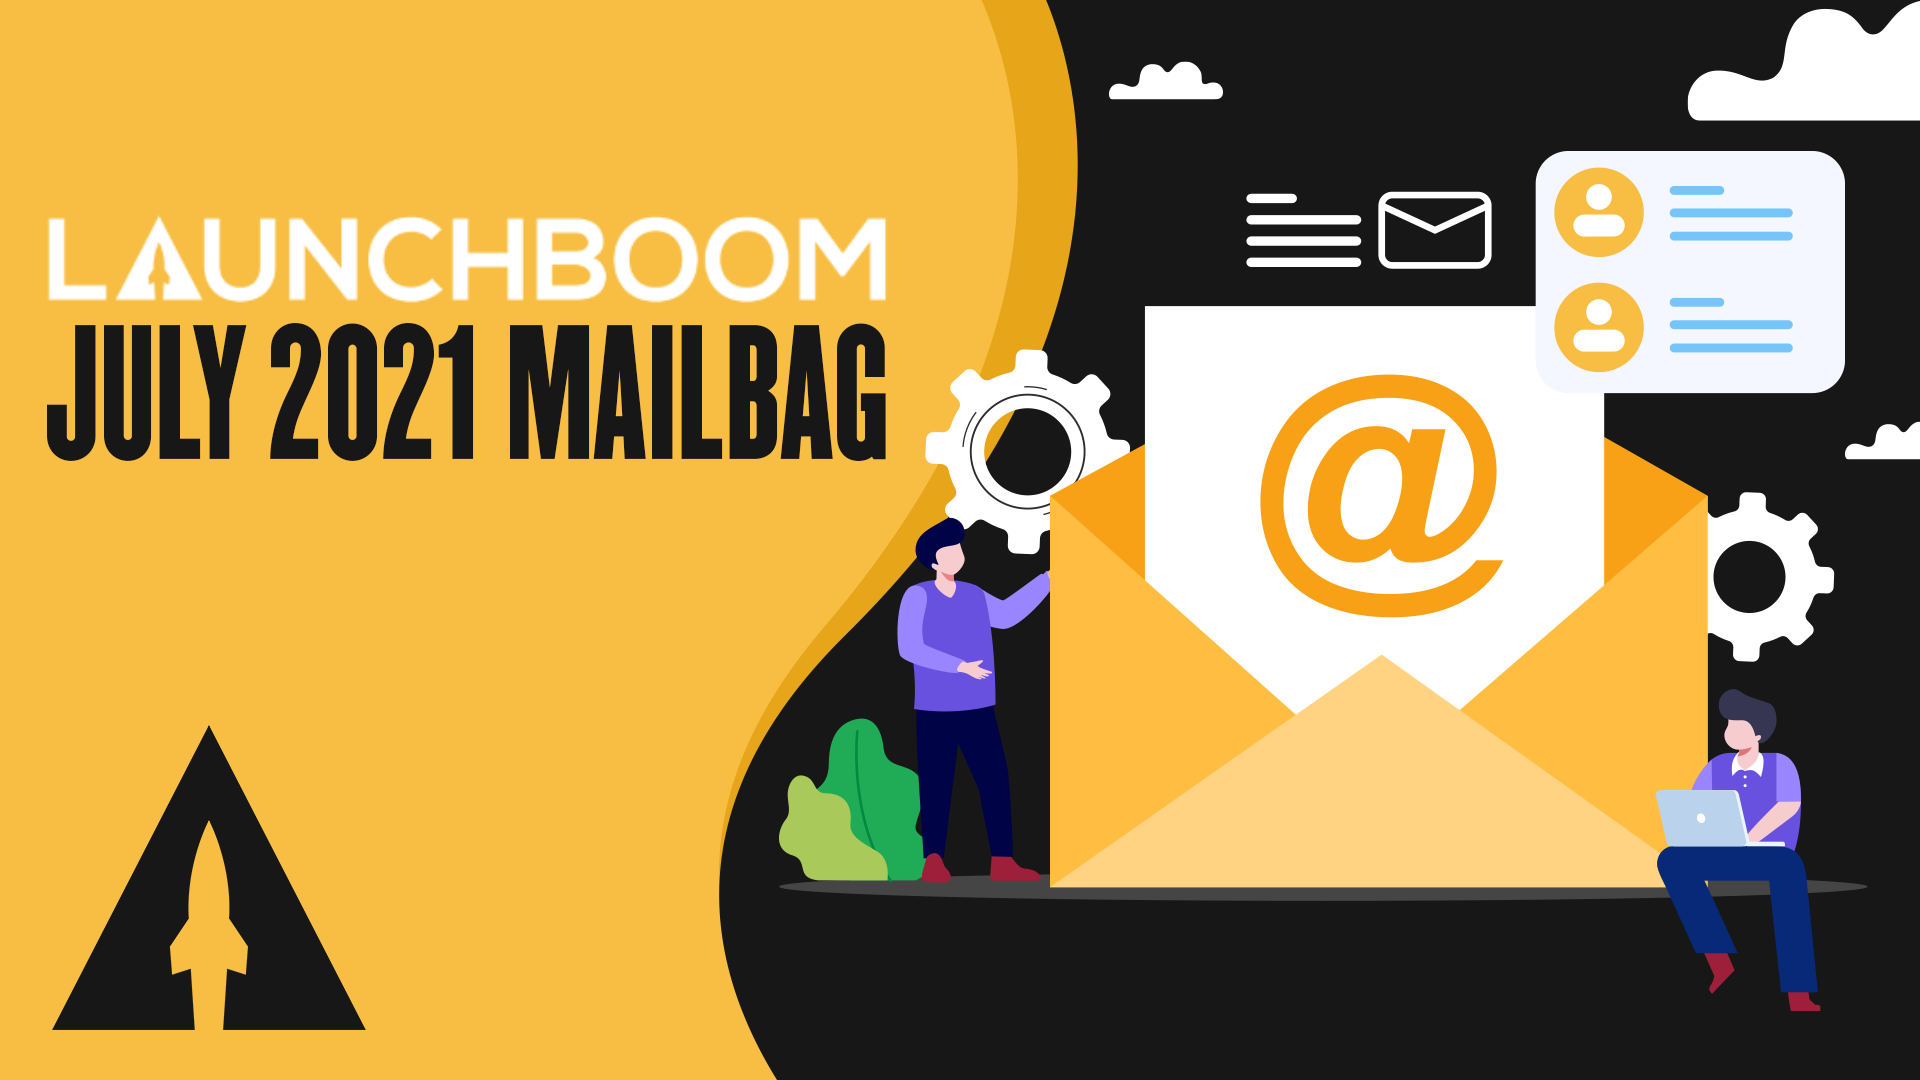 July 2021 LaunchBoom mailbag: crowdfunding publicity stunt, campaign video budgets, virtual games